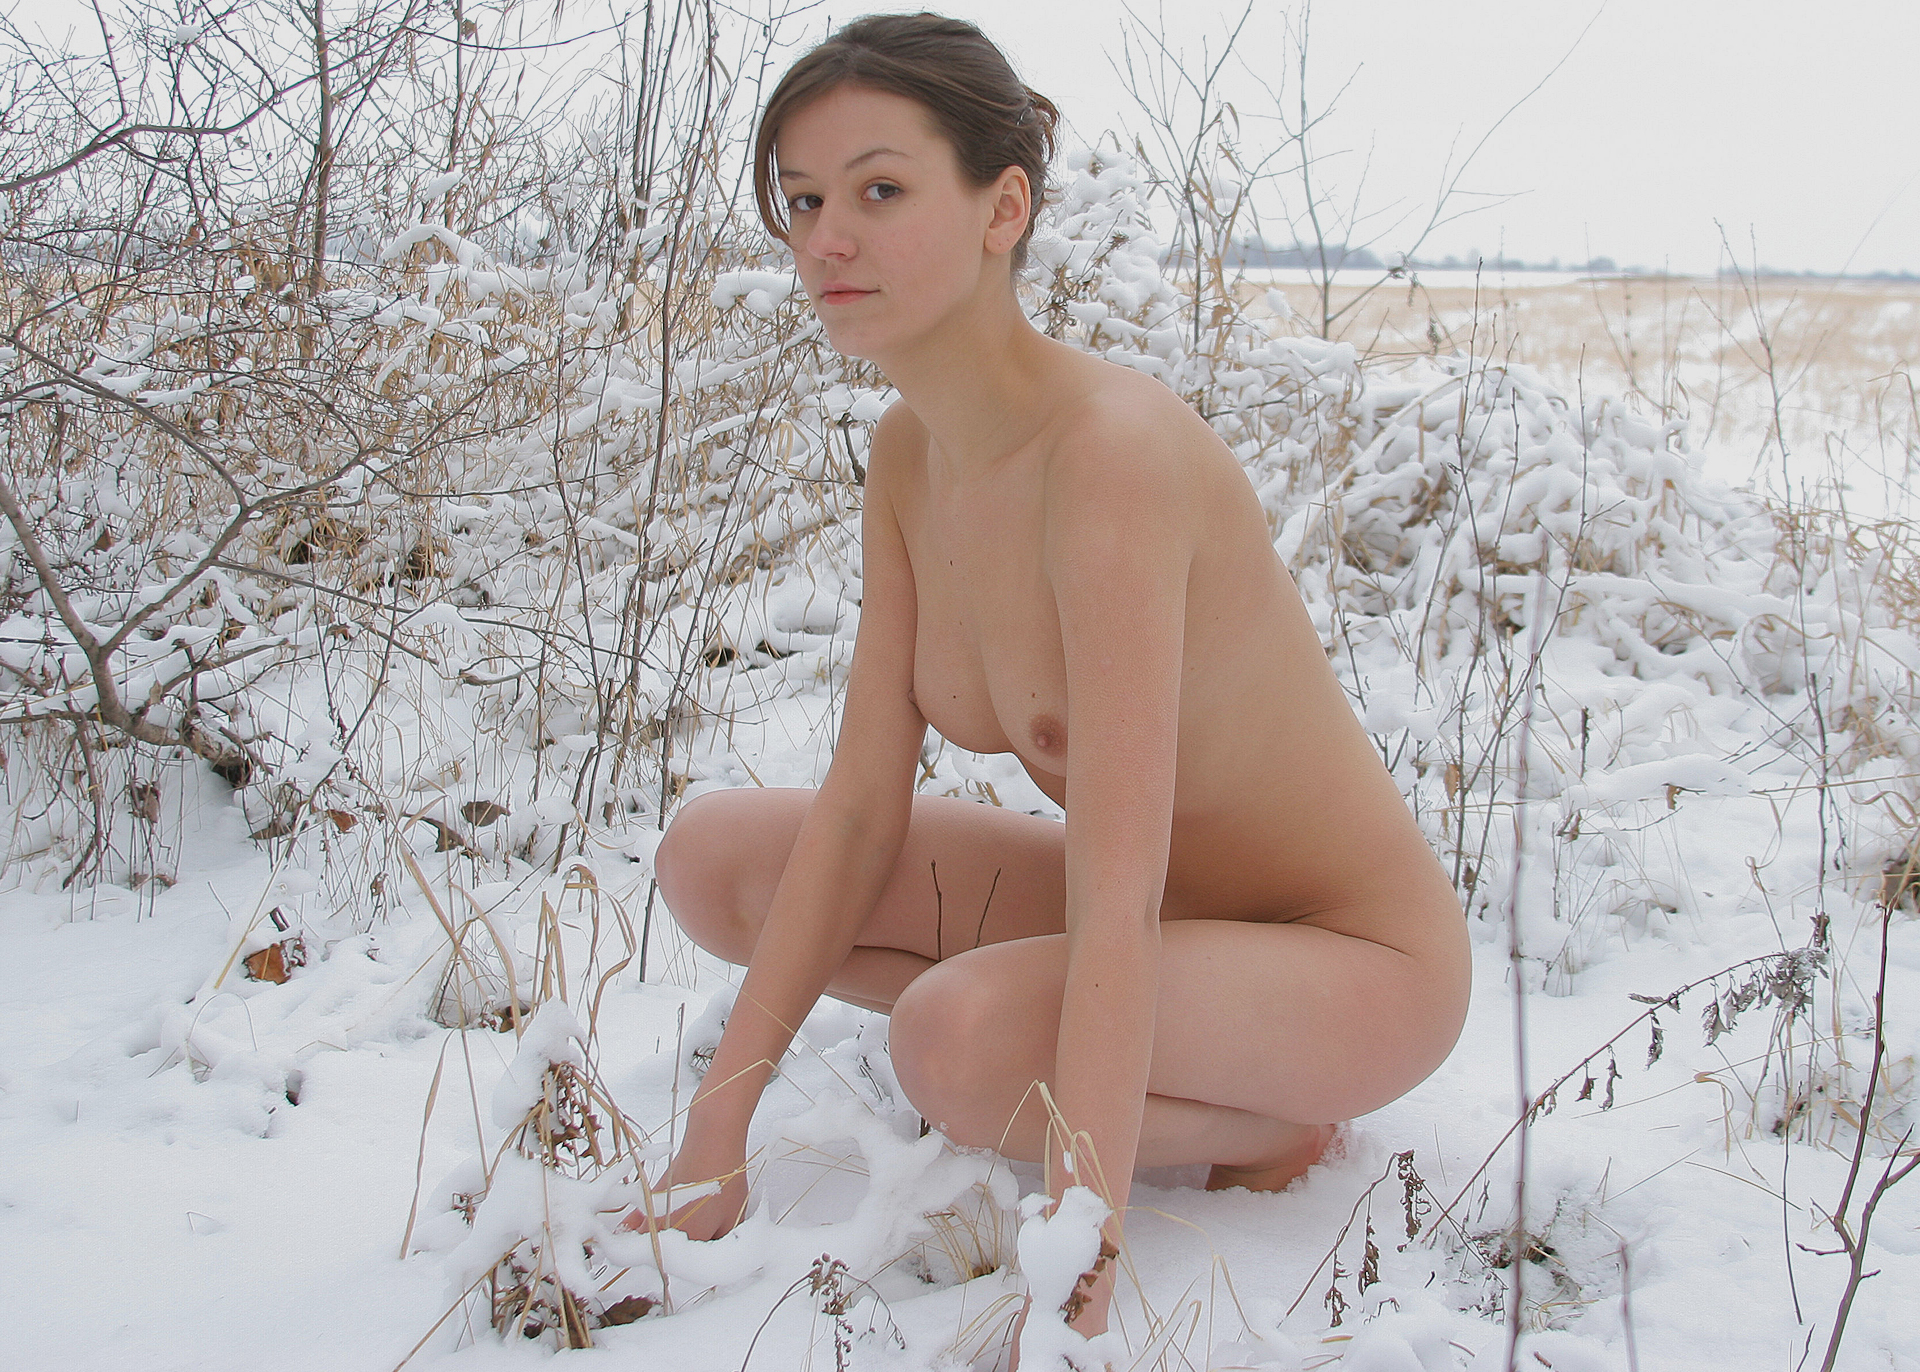 See and save as amateur girl nude and barefoot in snow porn pict